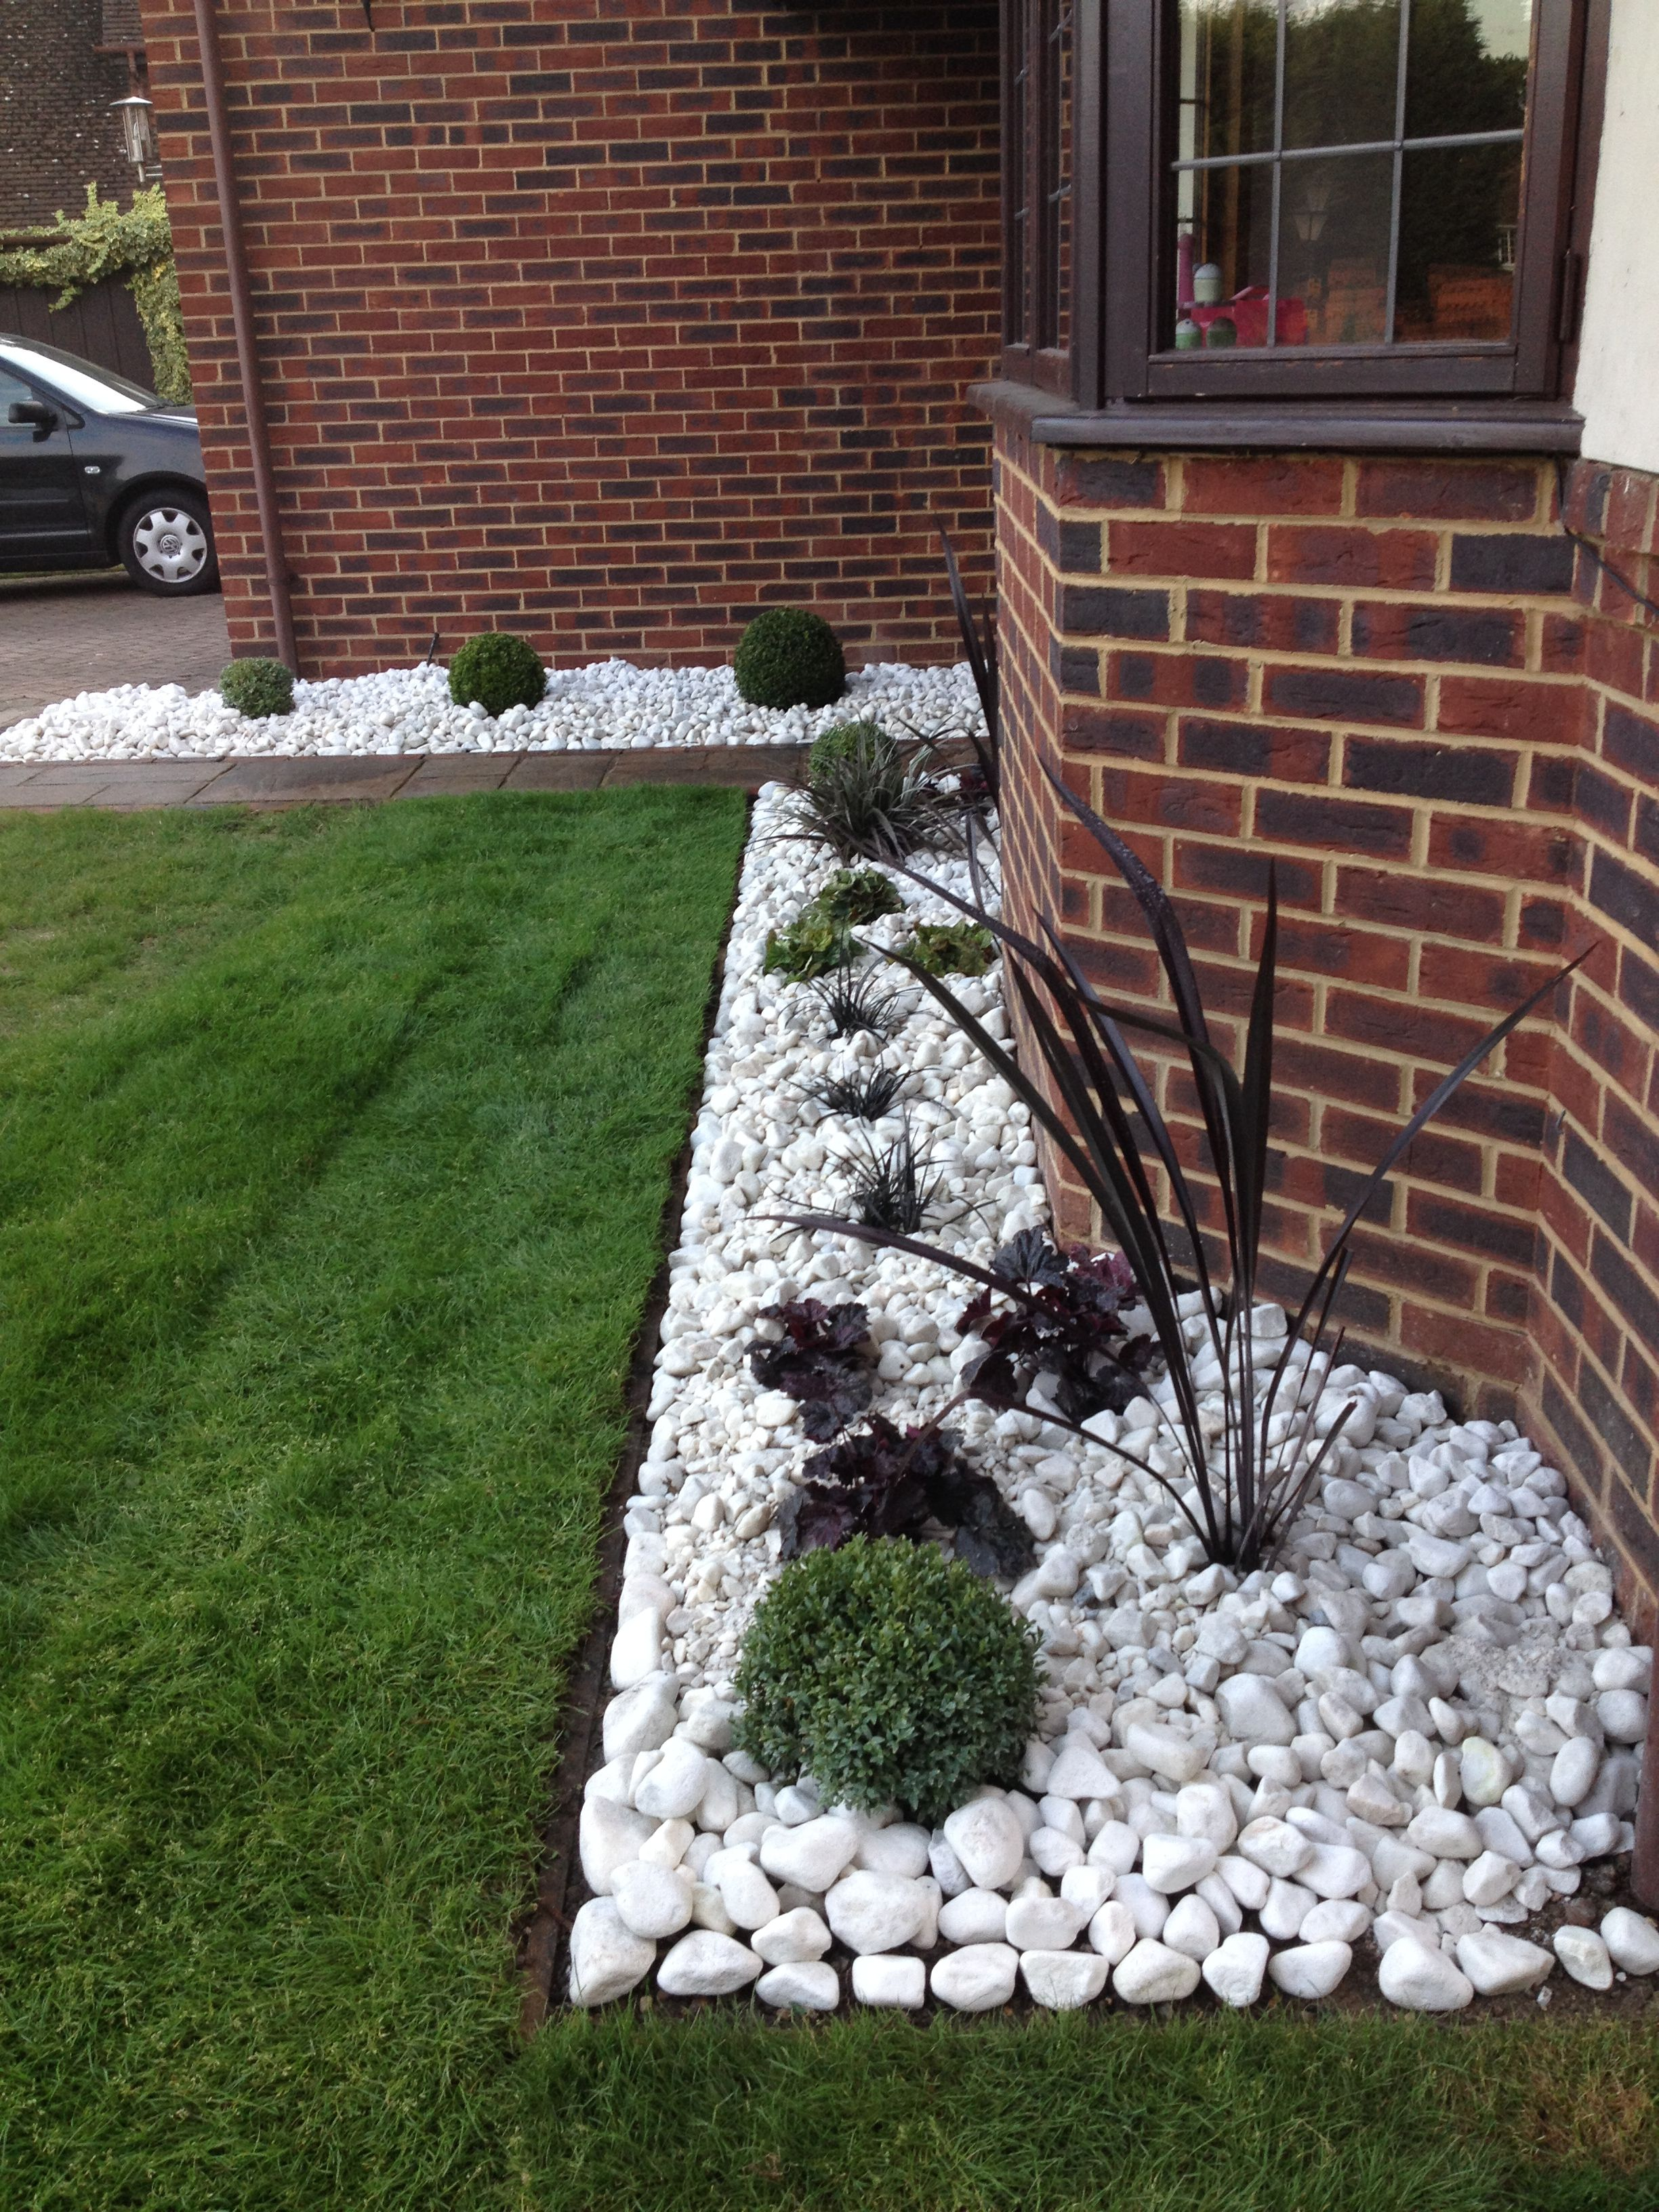 Small Front Garden Border Re Design Modern, Low Maintenance With Spanish